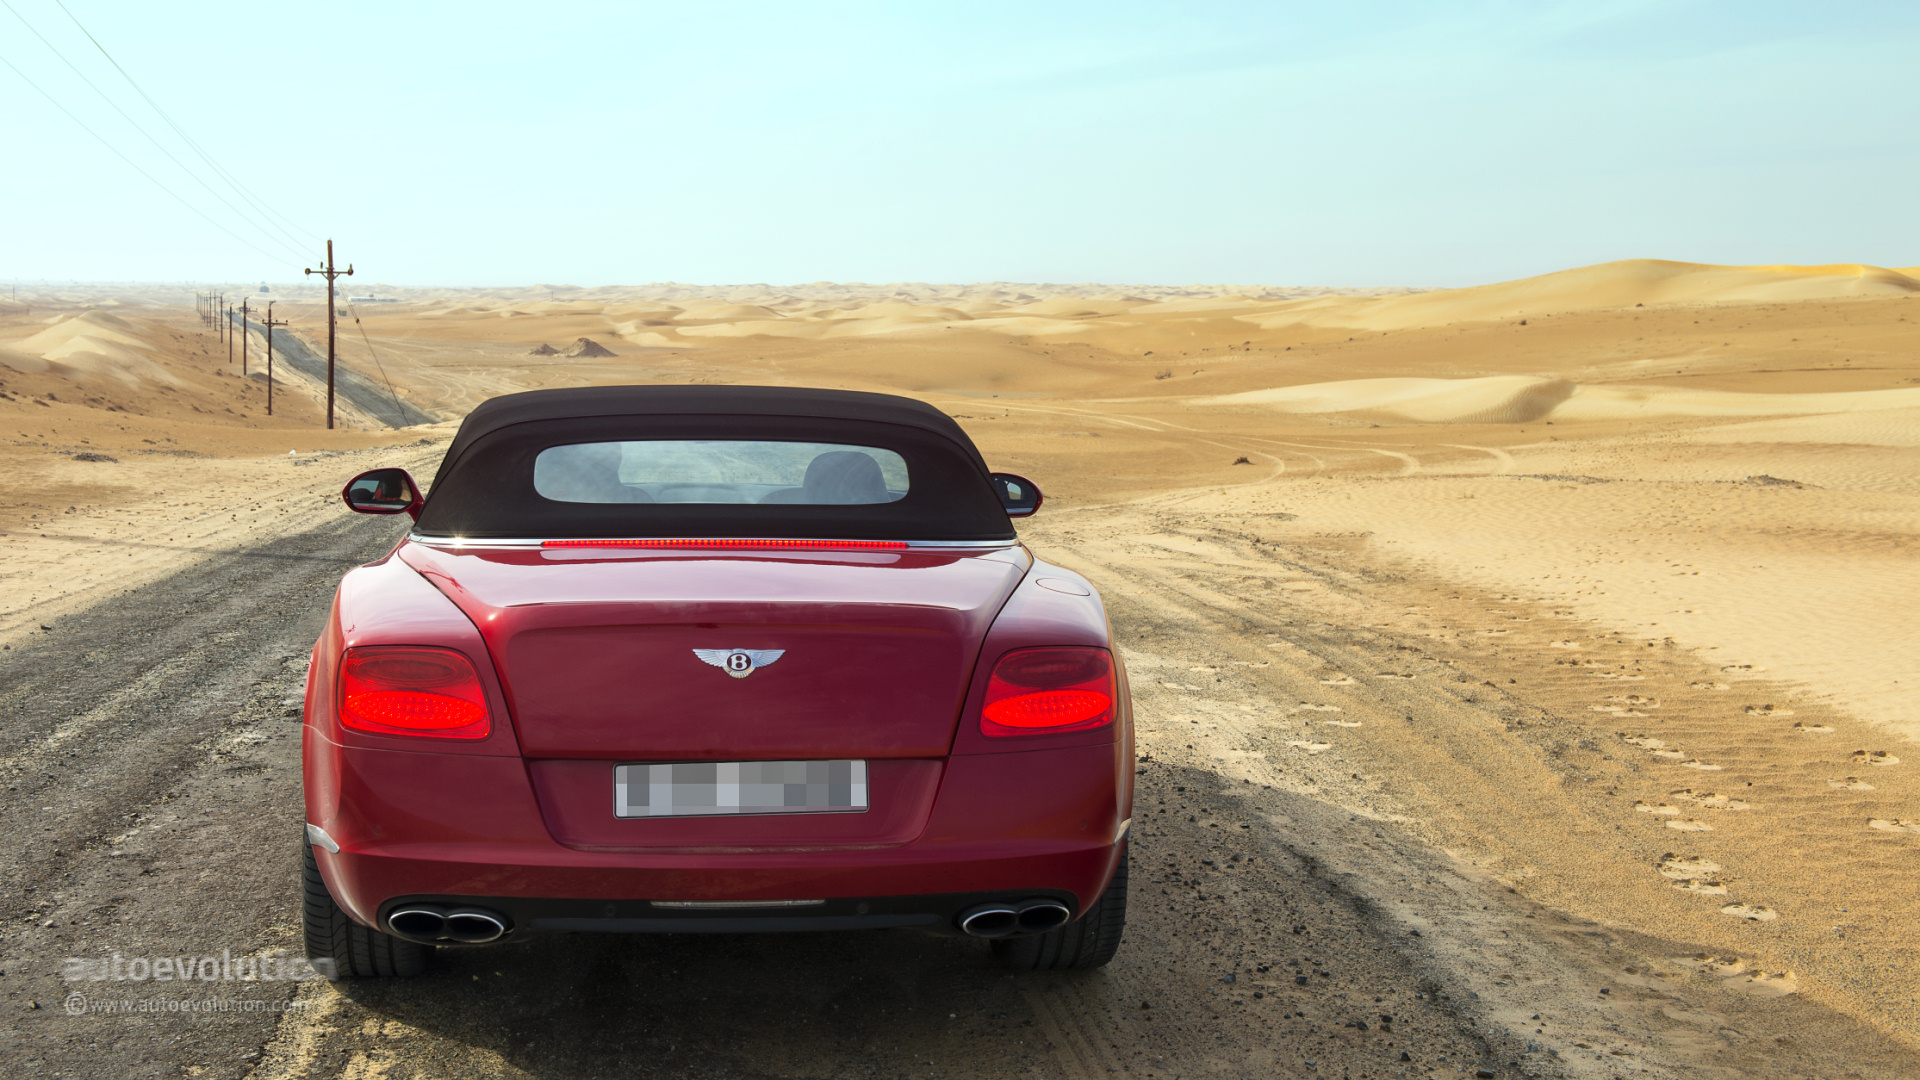 Bentley continental gt w12 review autoevolution - Bentley Continental Gt W12 Review Autoevolution 31